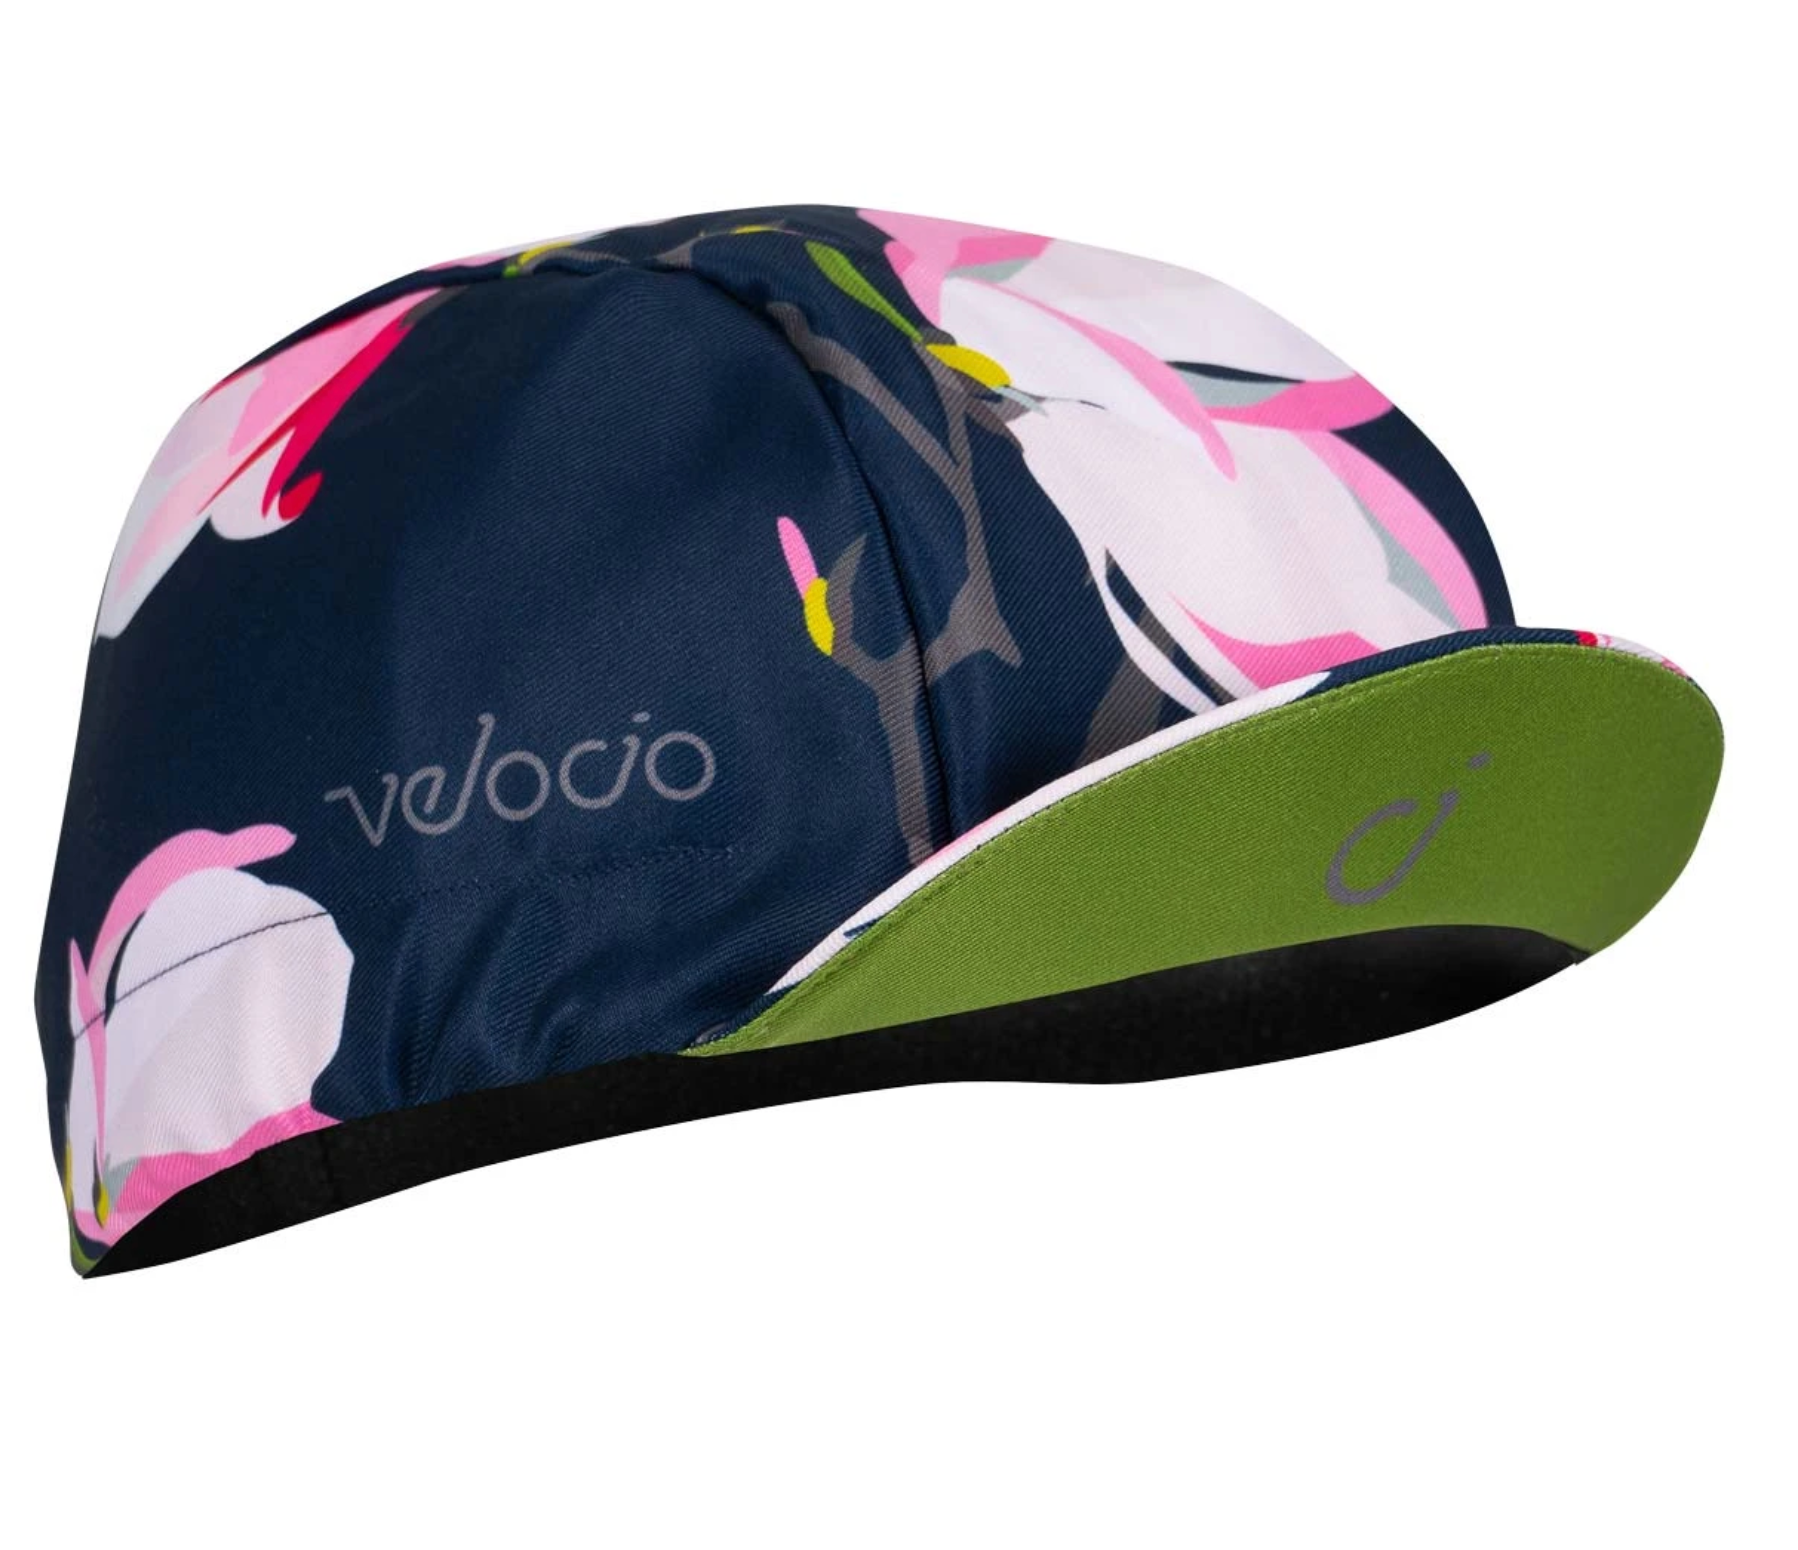 CYCLING CAP WITH FLORAL DESIGN BY VELOCIO